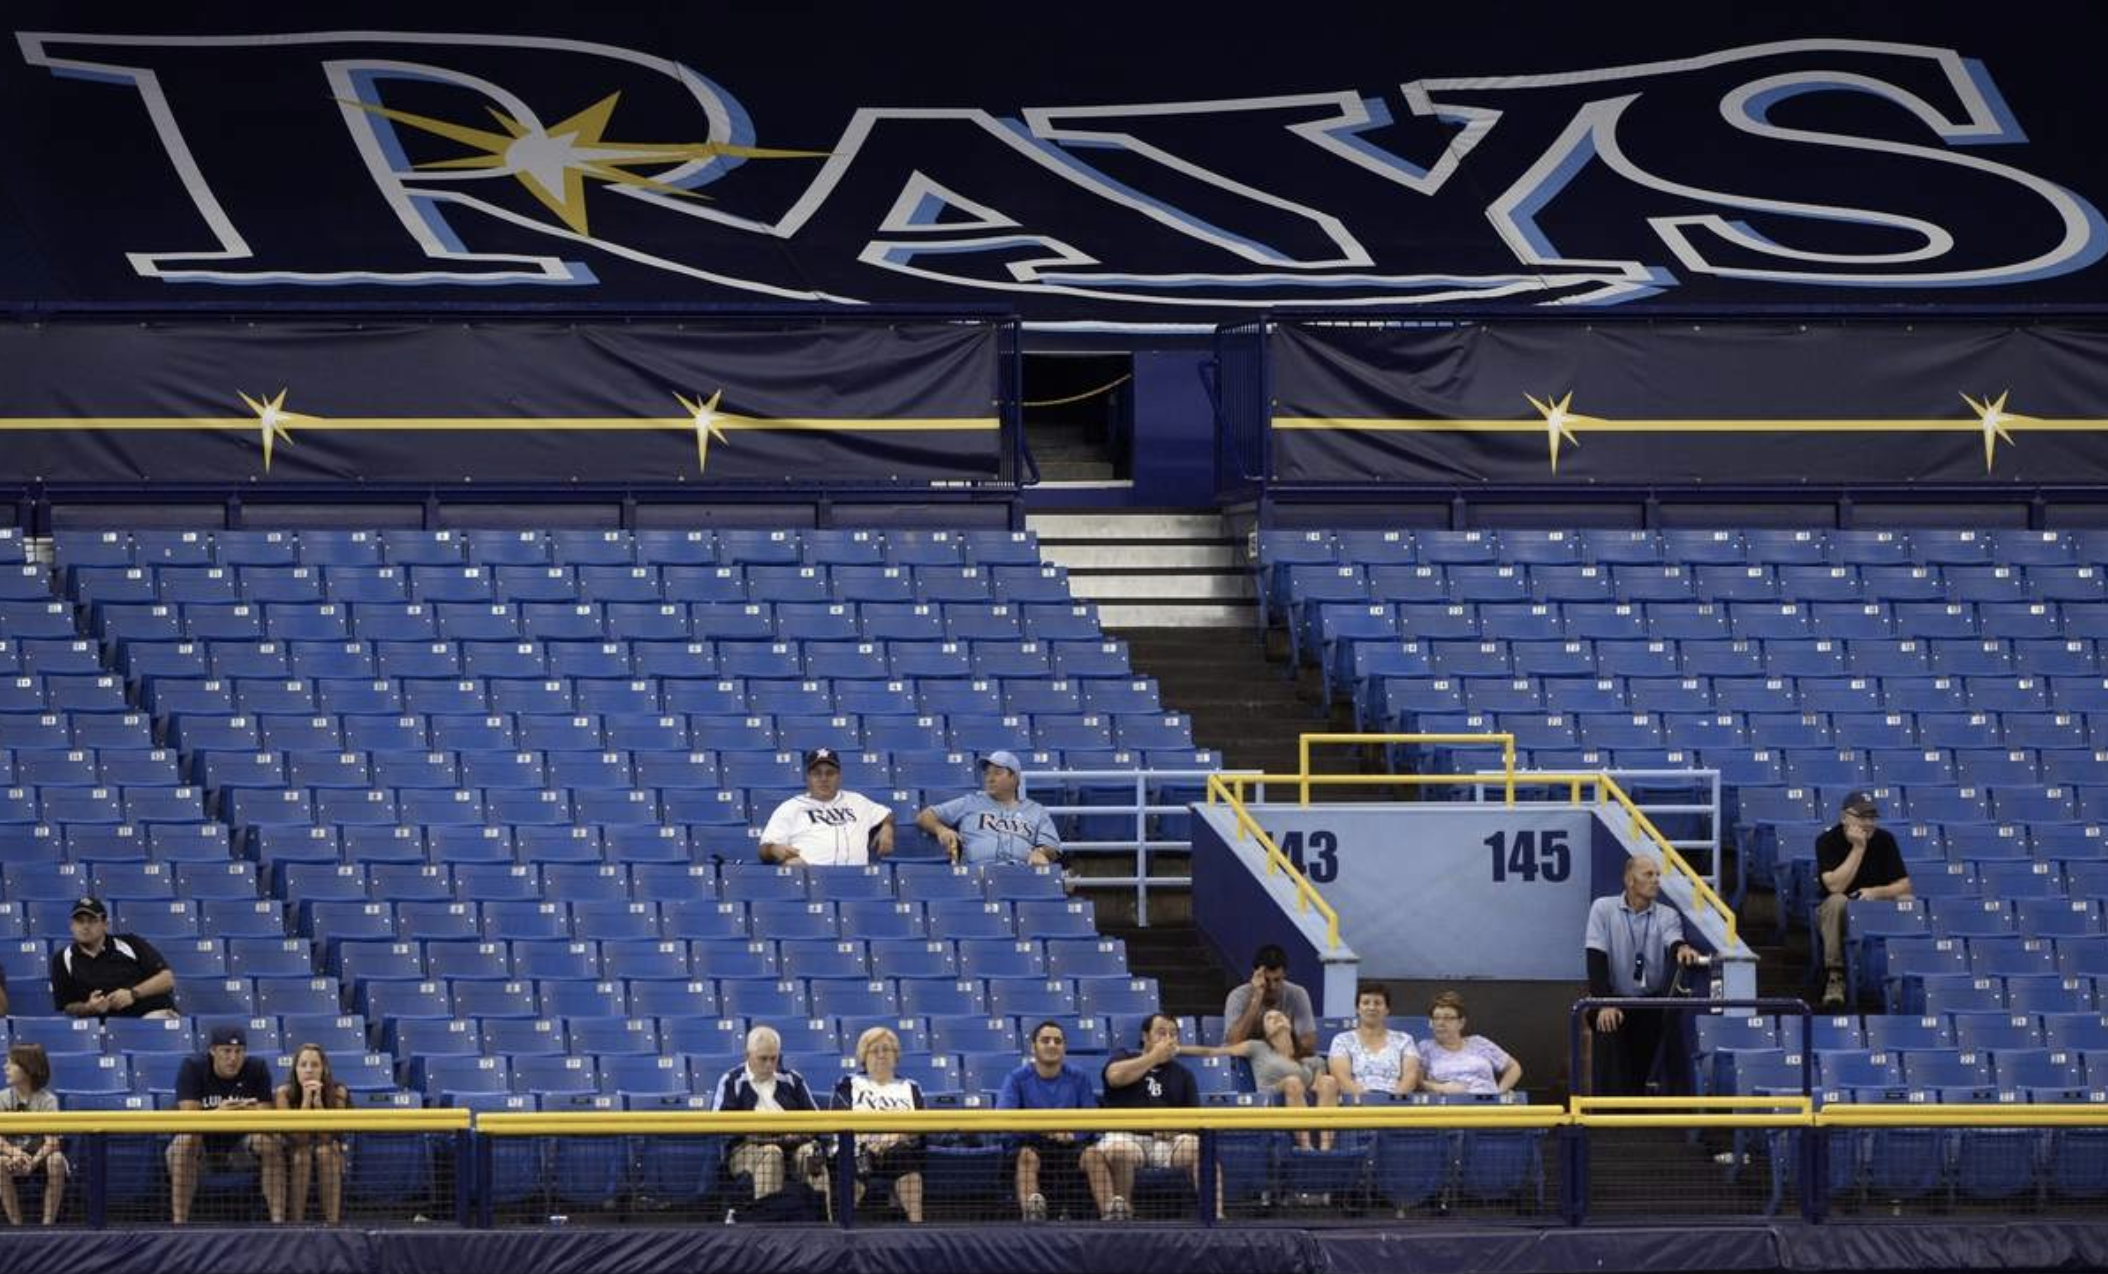 That just can't be real.' National media reacts to Rays' Montreal idea